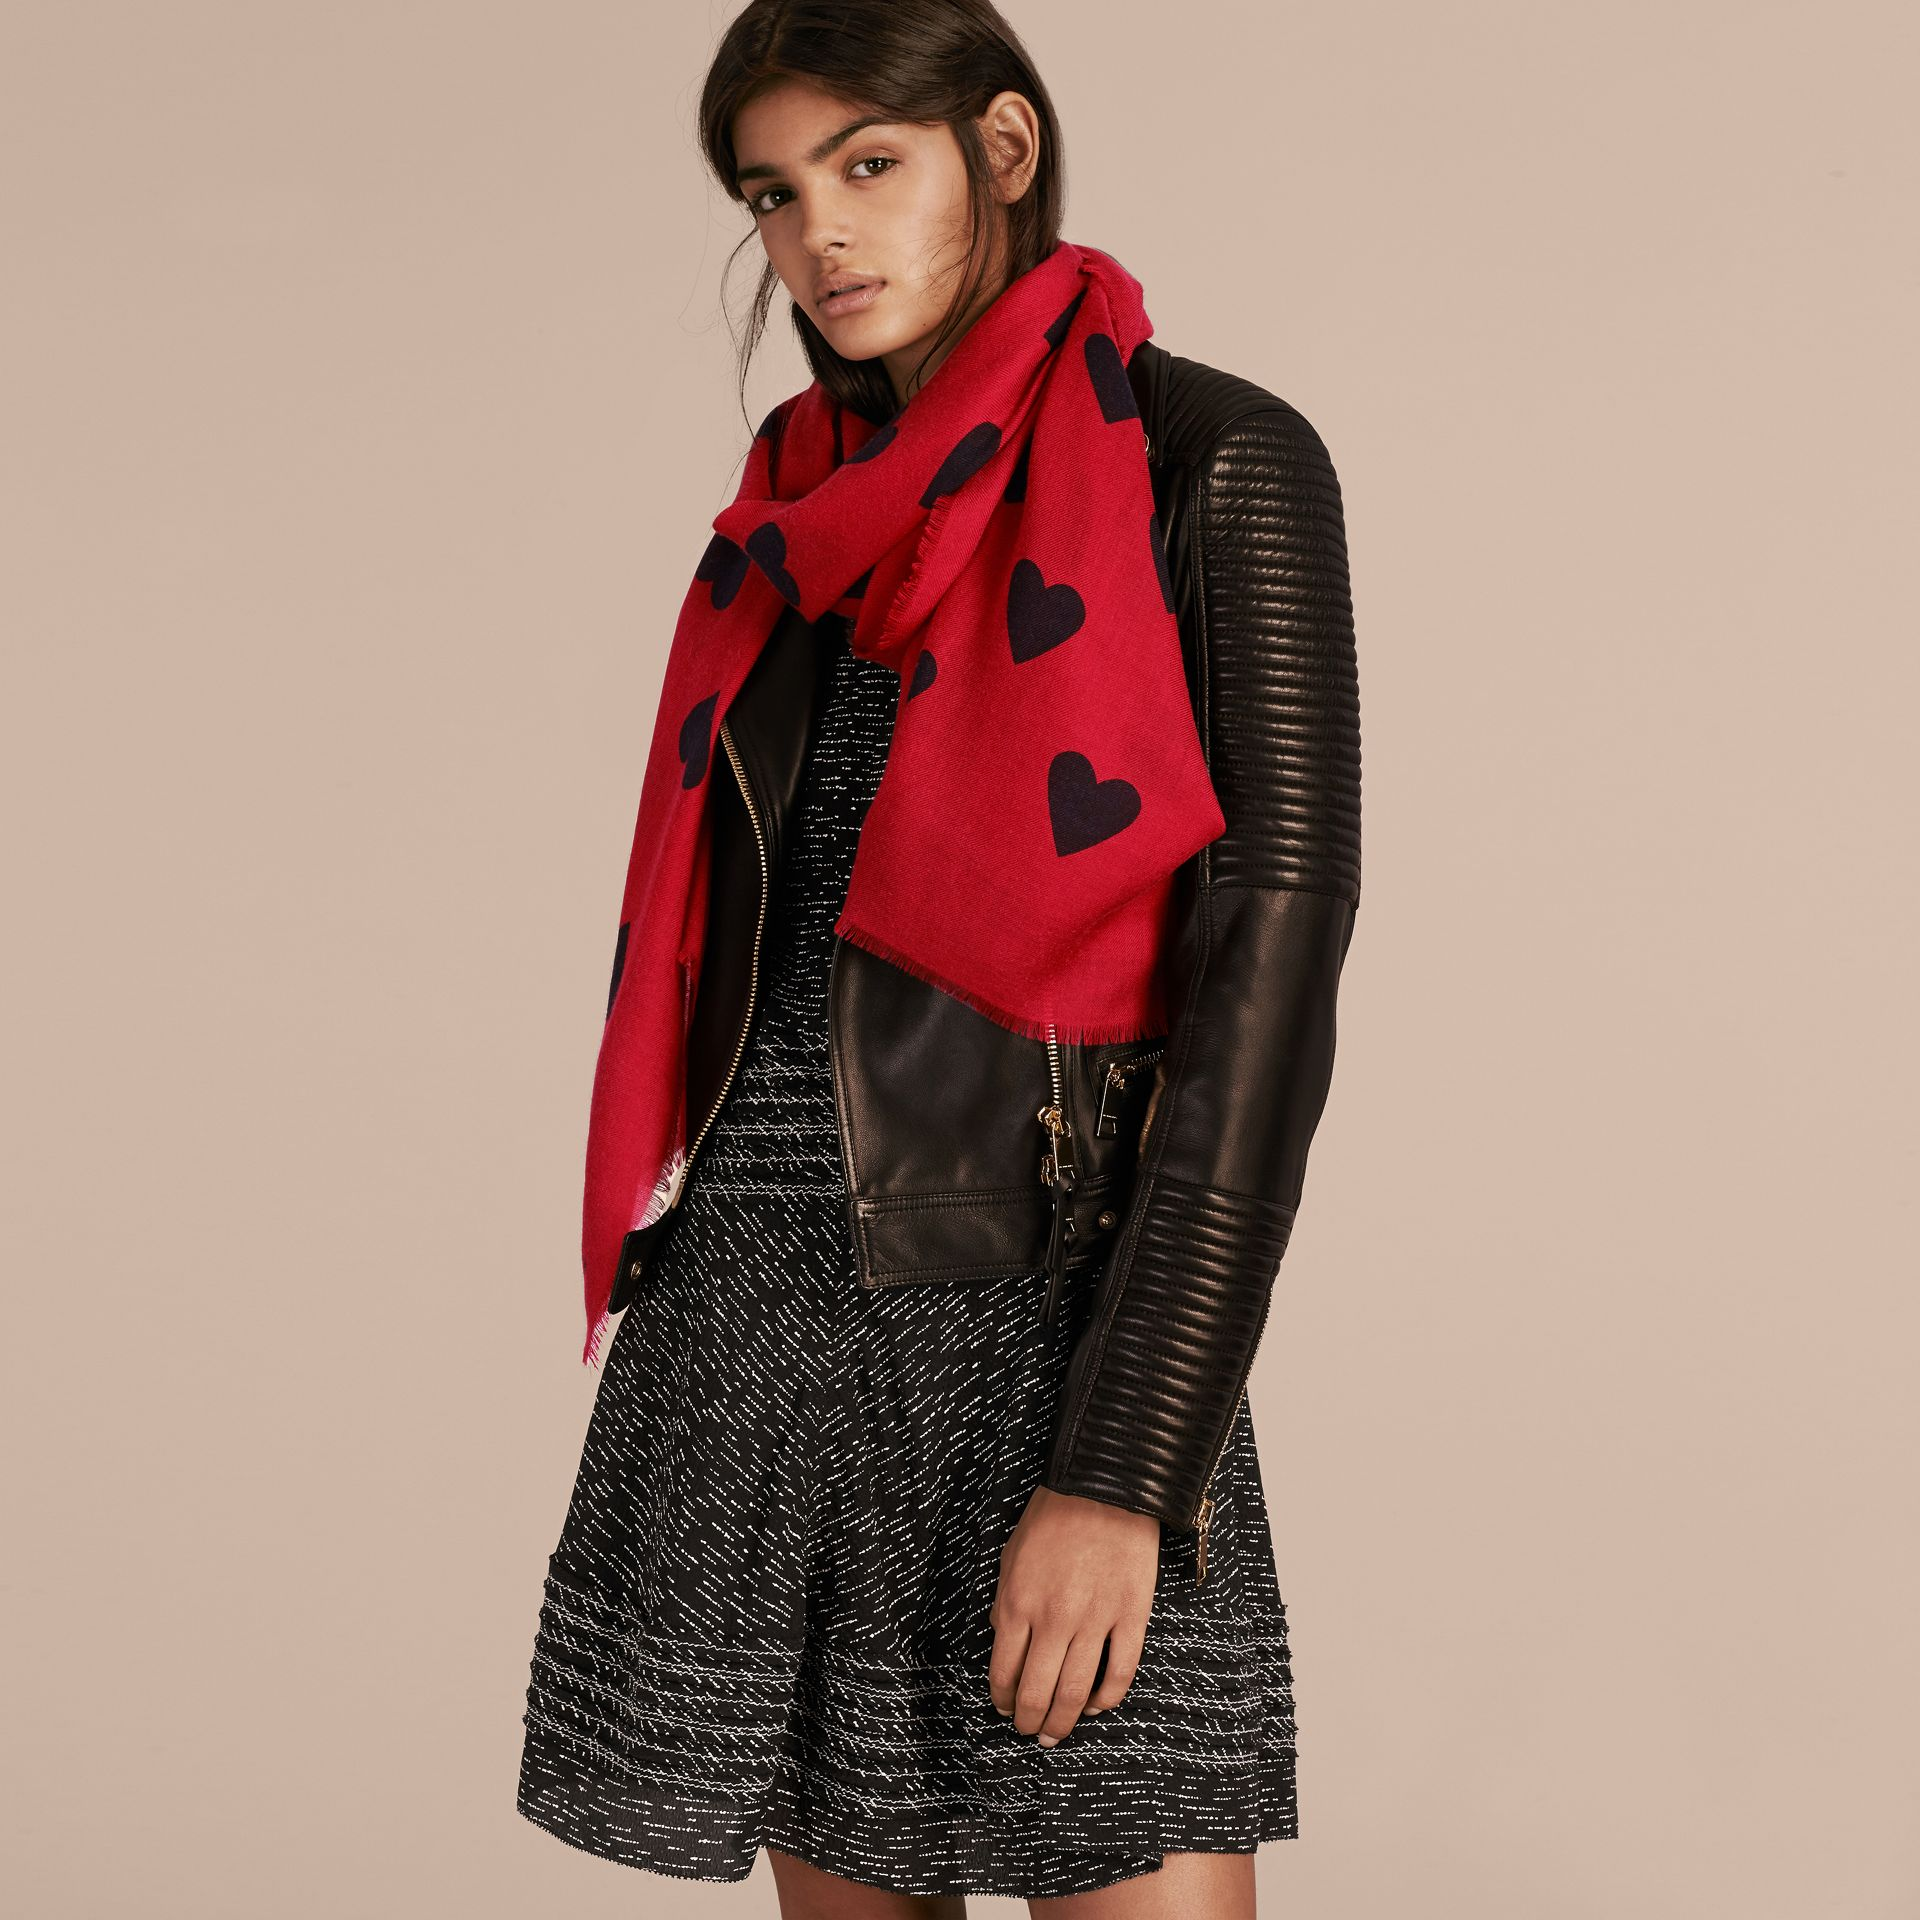 Parade red/black The Lightweight Cashmere Scarf in Heart Print Parade Red/black - gallery image 3